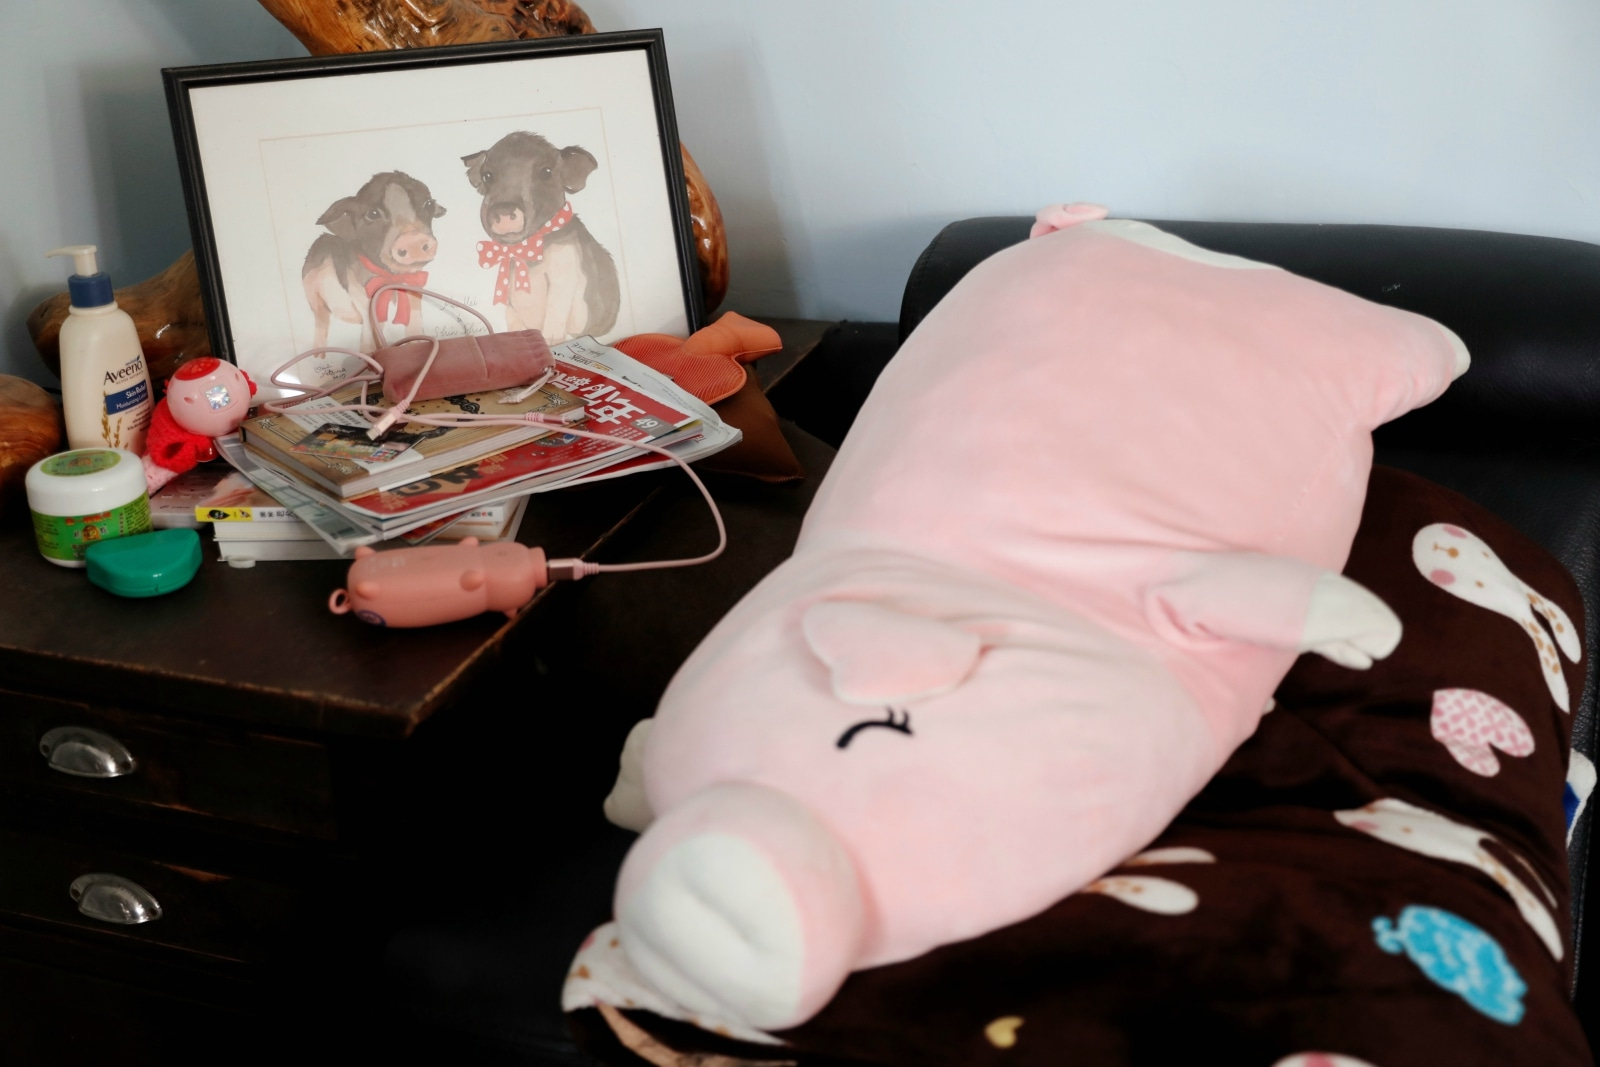 Pig shaped cushion and power bank are seen at Anita Chen's house, in Taipei, Taiwan January 28, 2019. REUTERS/Tyrone Siu